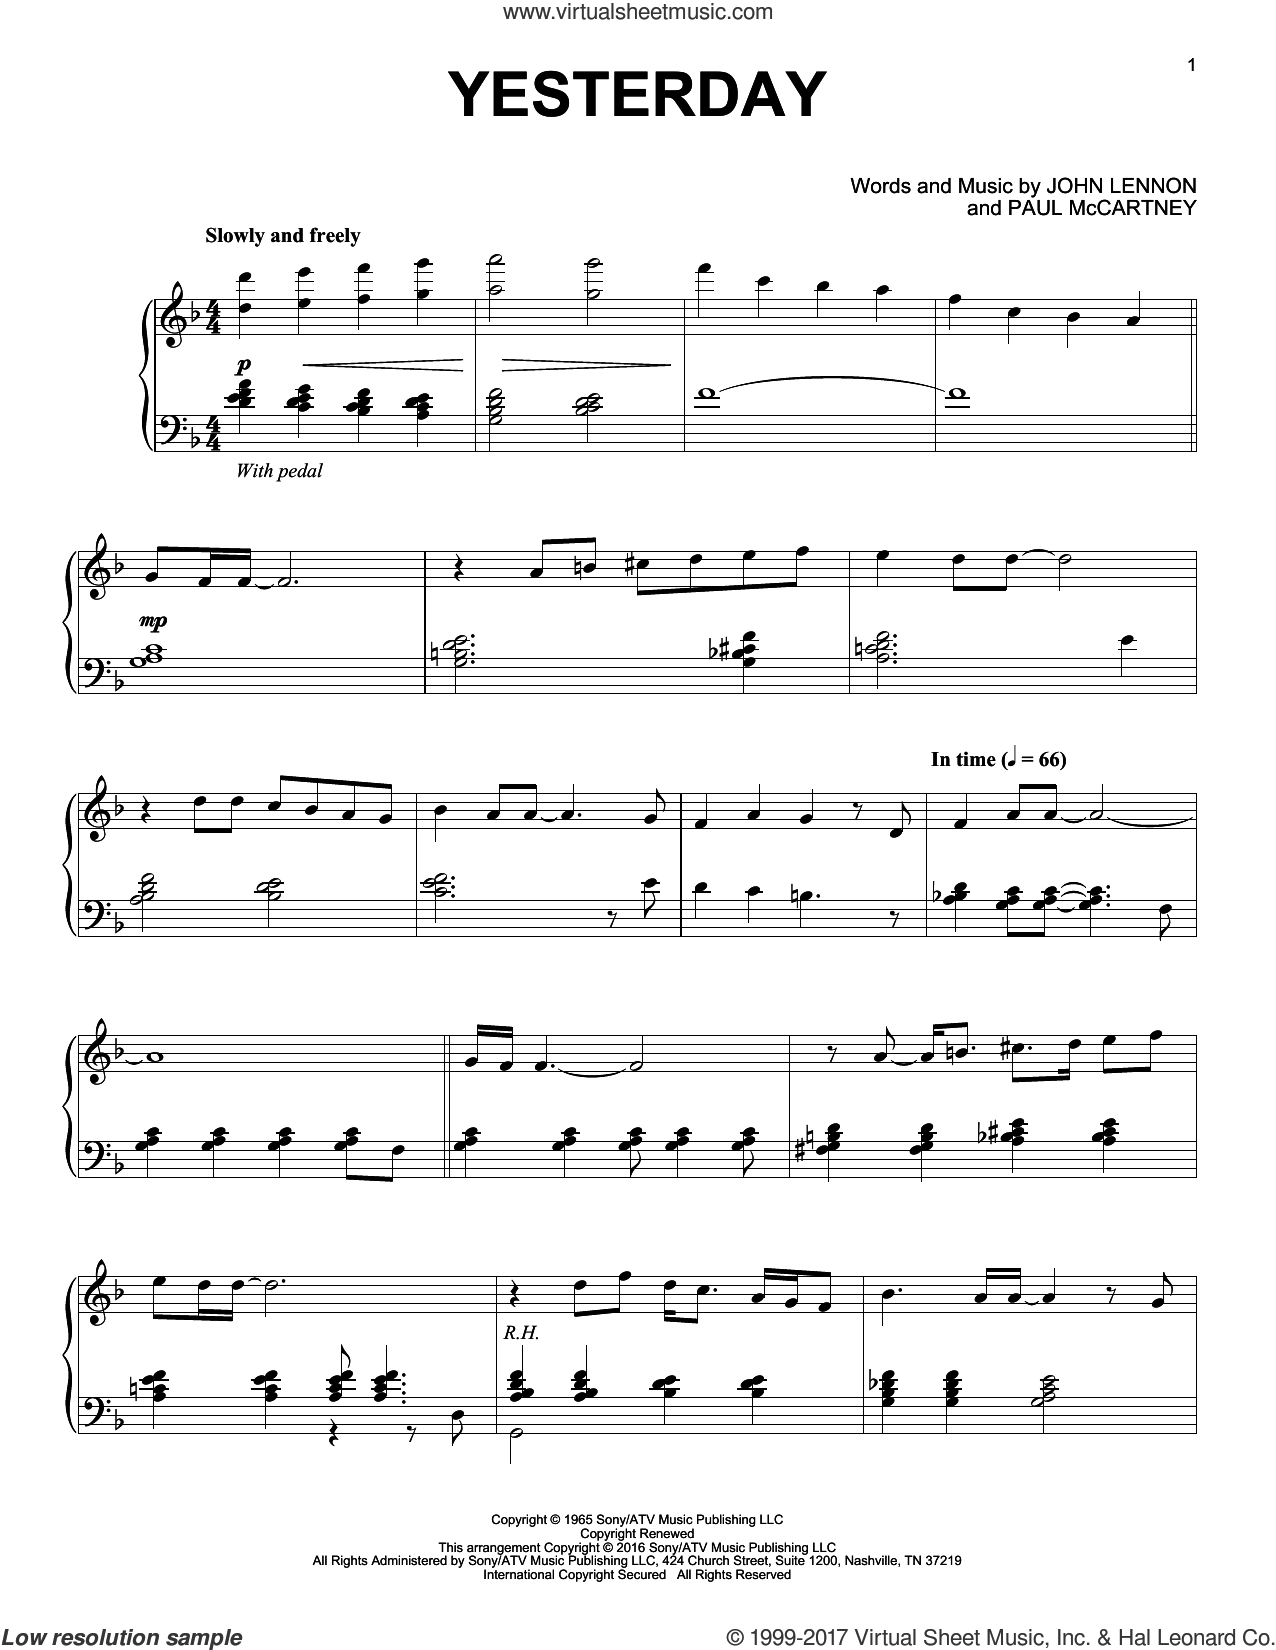 Yesterday [Jazz version] sheet music for piano solo by The Beatles, John Lennon and Paul McCartney, intermediate skill level